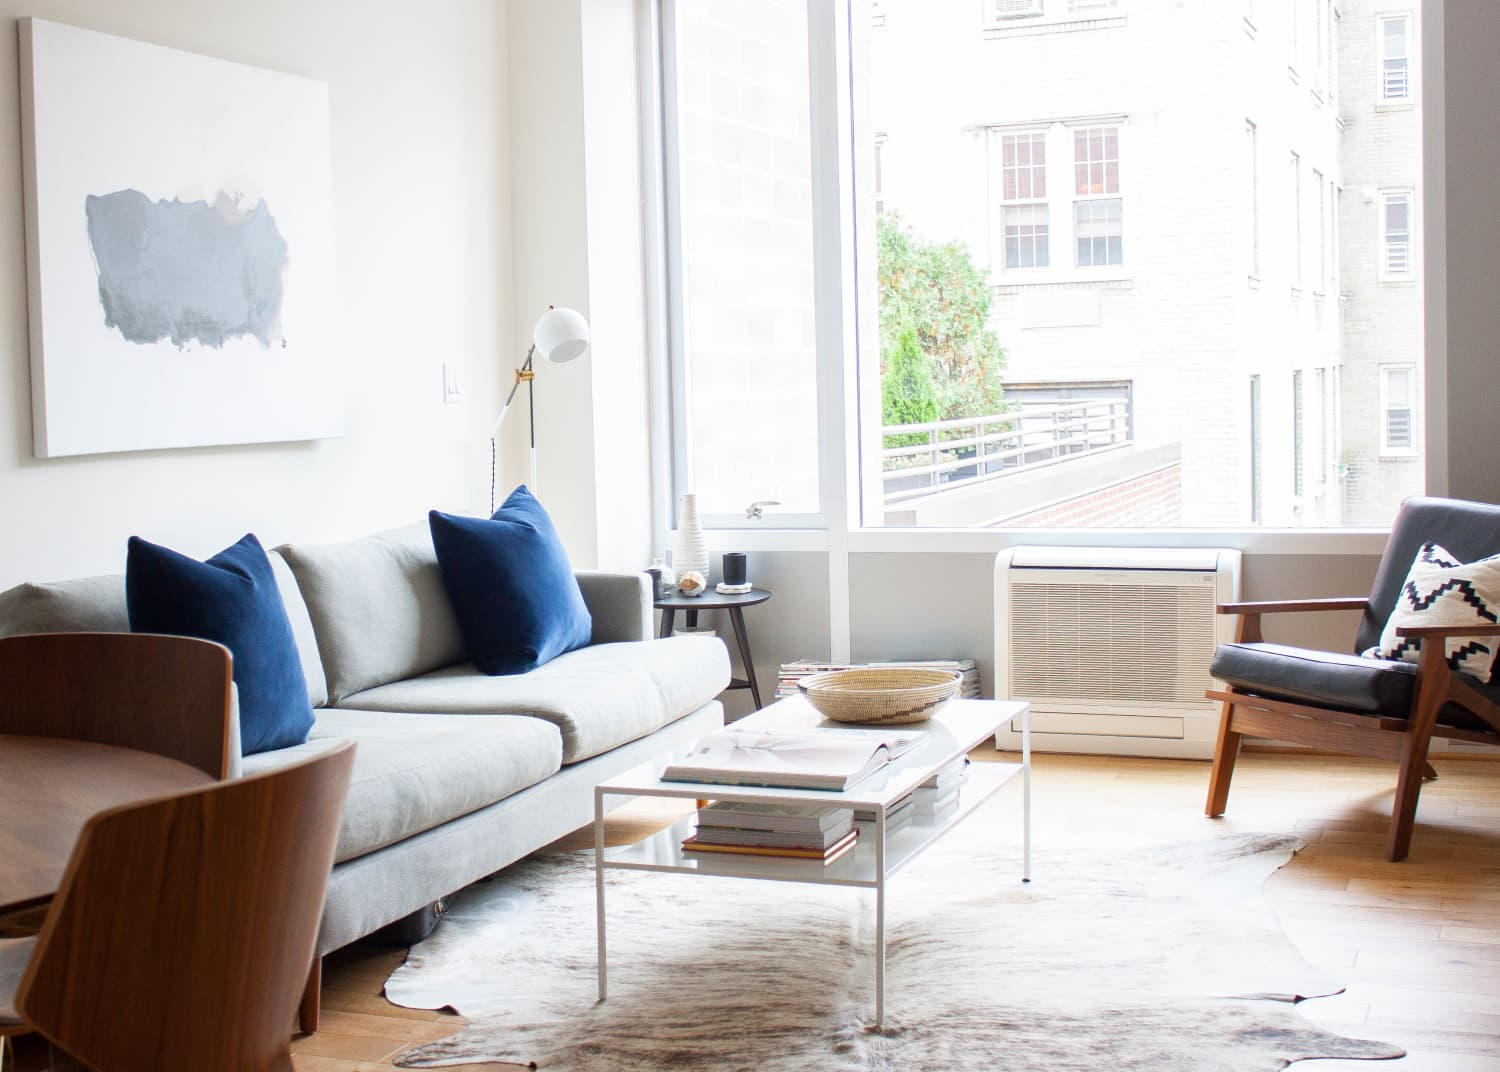 36-small-living-room-ideas-how-to-design-decorate-a-small-living-room